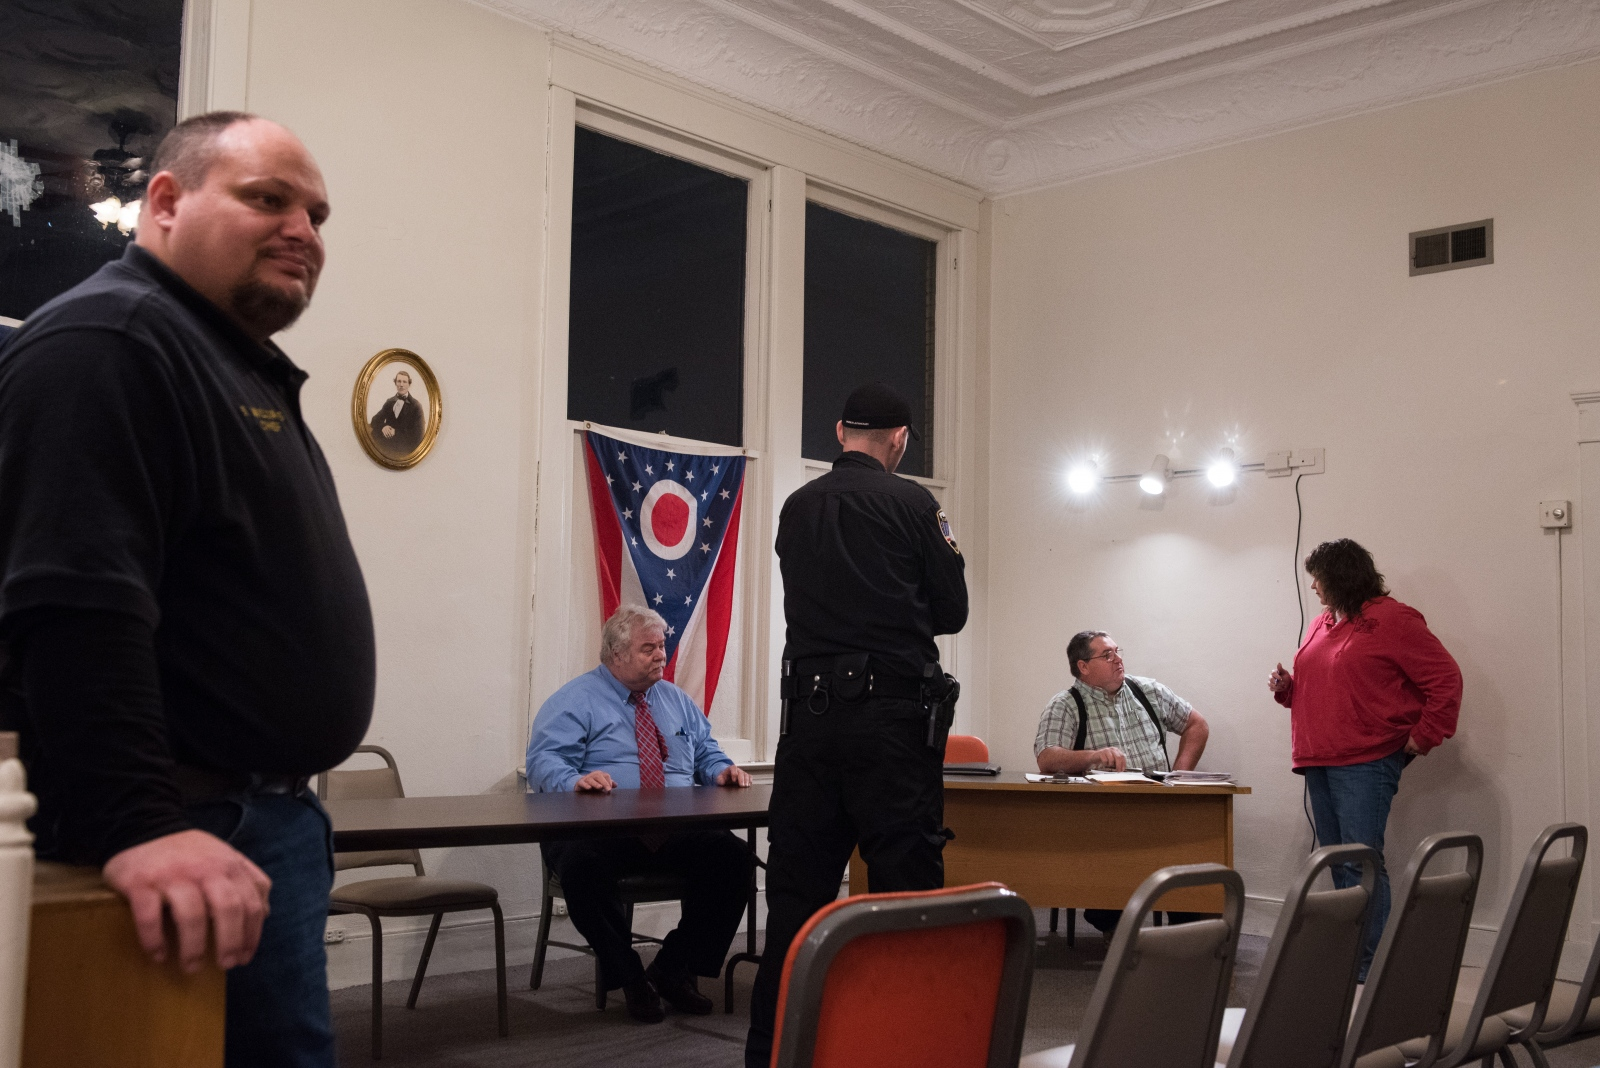 (left to right) Coolville police chief Steve Williams, solicitor Rick Hedges, officer Leif Babb, fiscal officer Jim Ford, and Michelle Hyer of Buckeye Hills-Hocking Valley Regional Development District wait for a town hall meeting regarding the implementation of a community sewer system to begin in Coolville, Ohio, in February 2014. A couple dozen residents packed into the room that night to voice their support for the town's voluntary fire department, which was asking that the town not begin charging them a water bill after the system was complete.  One reason why new businesses have not moved into Coolville is that the town has relied on septic tanks.